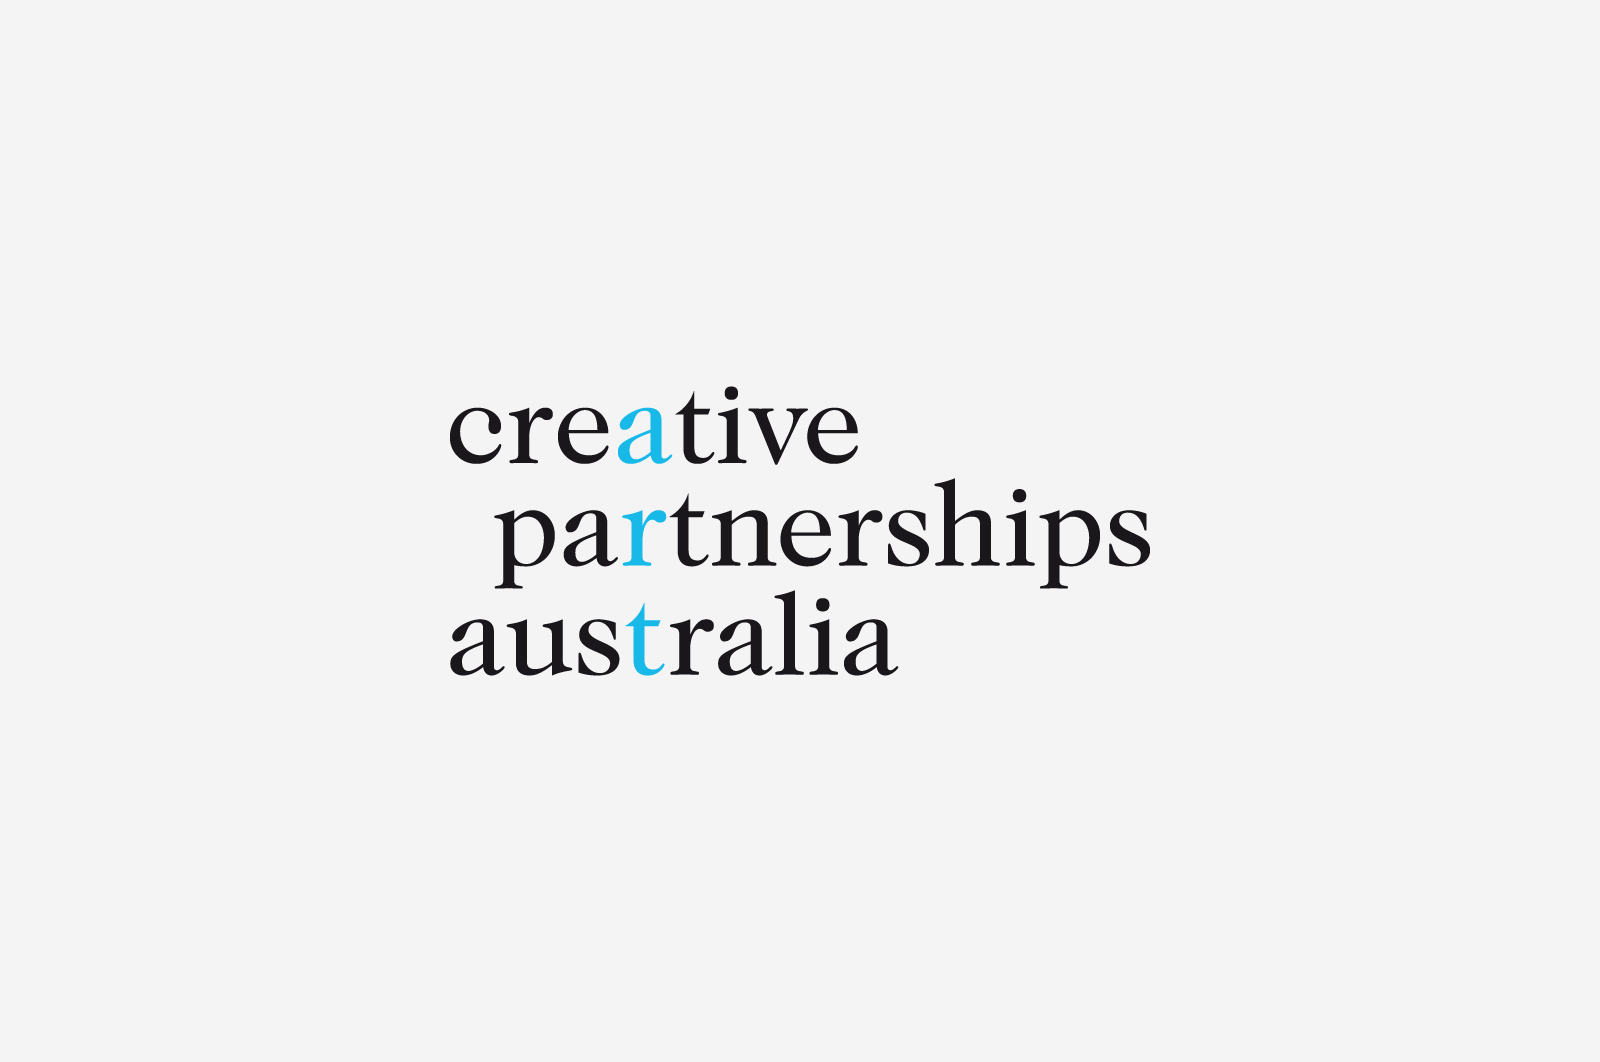 sweet_web_creative_partnerships_australia2.jpg